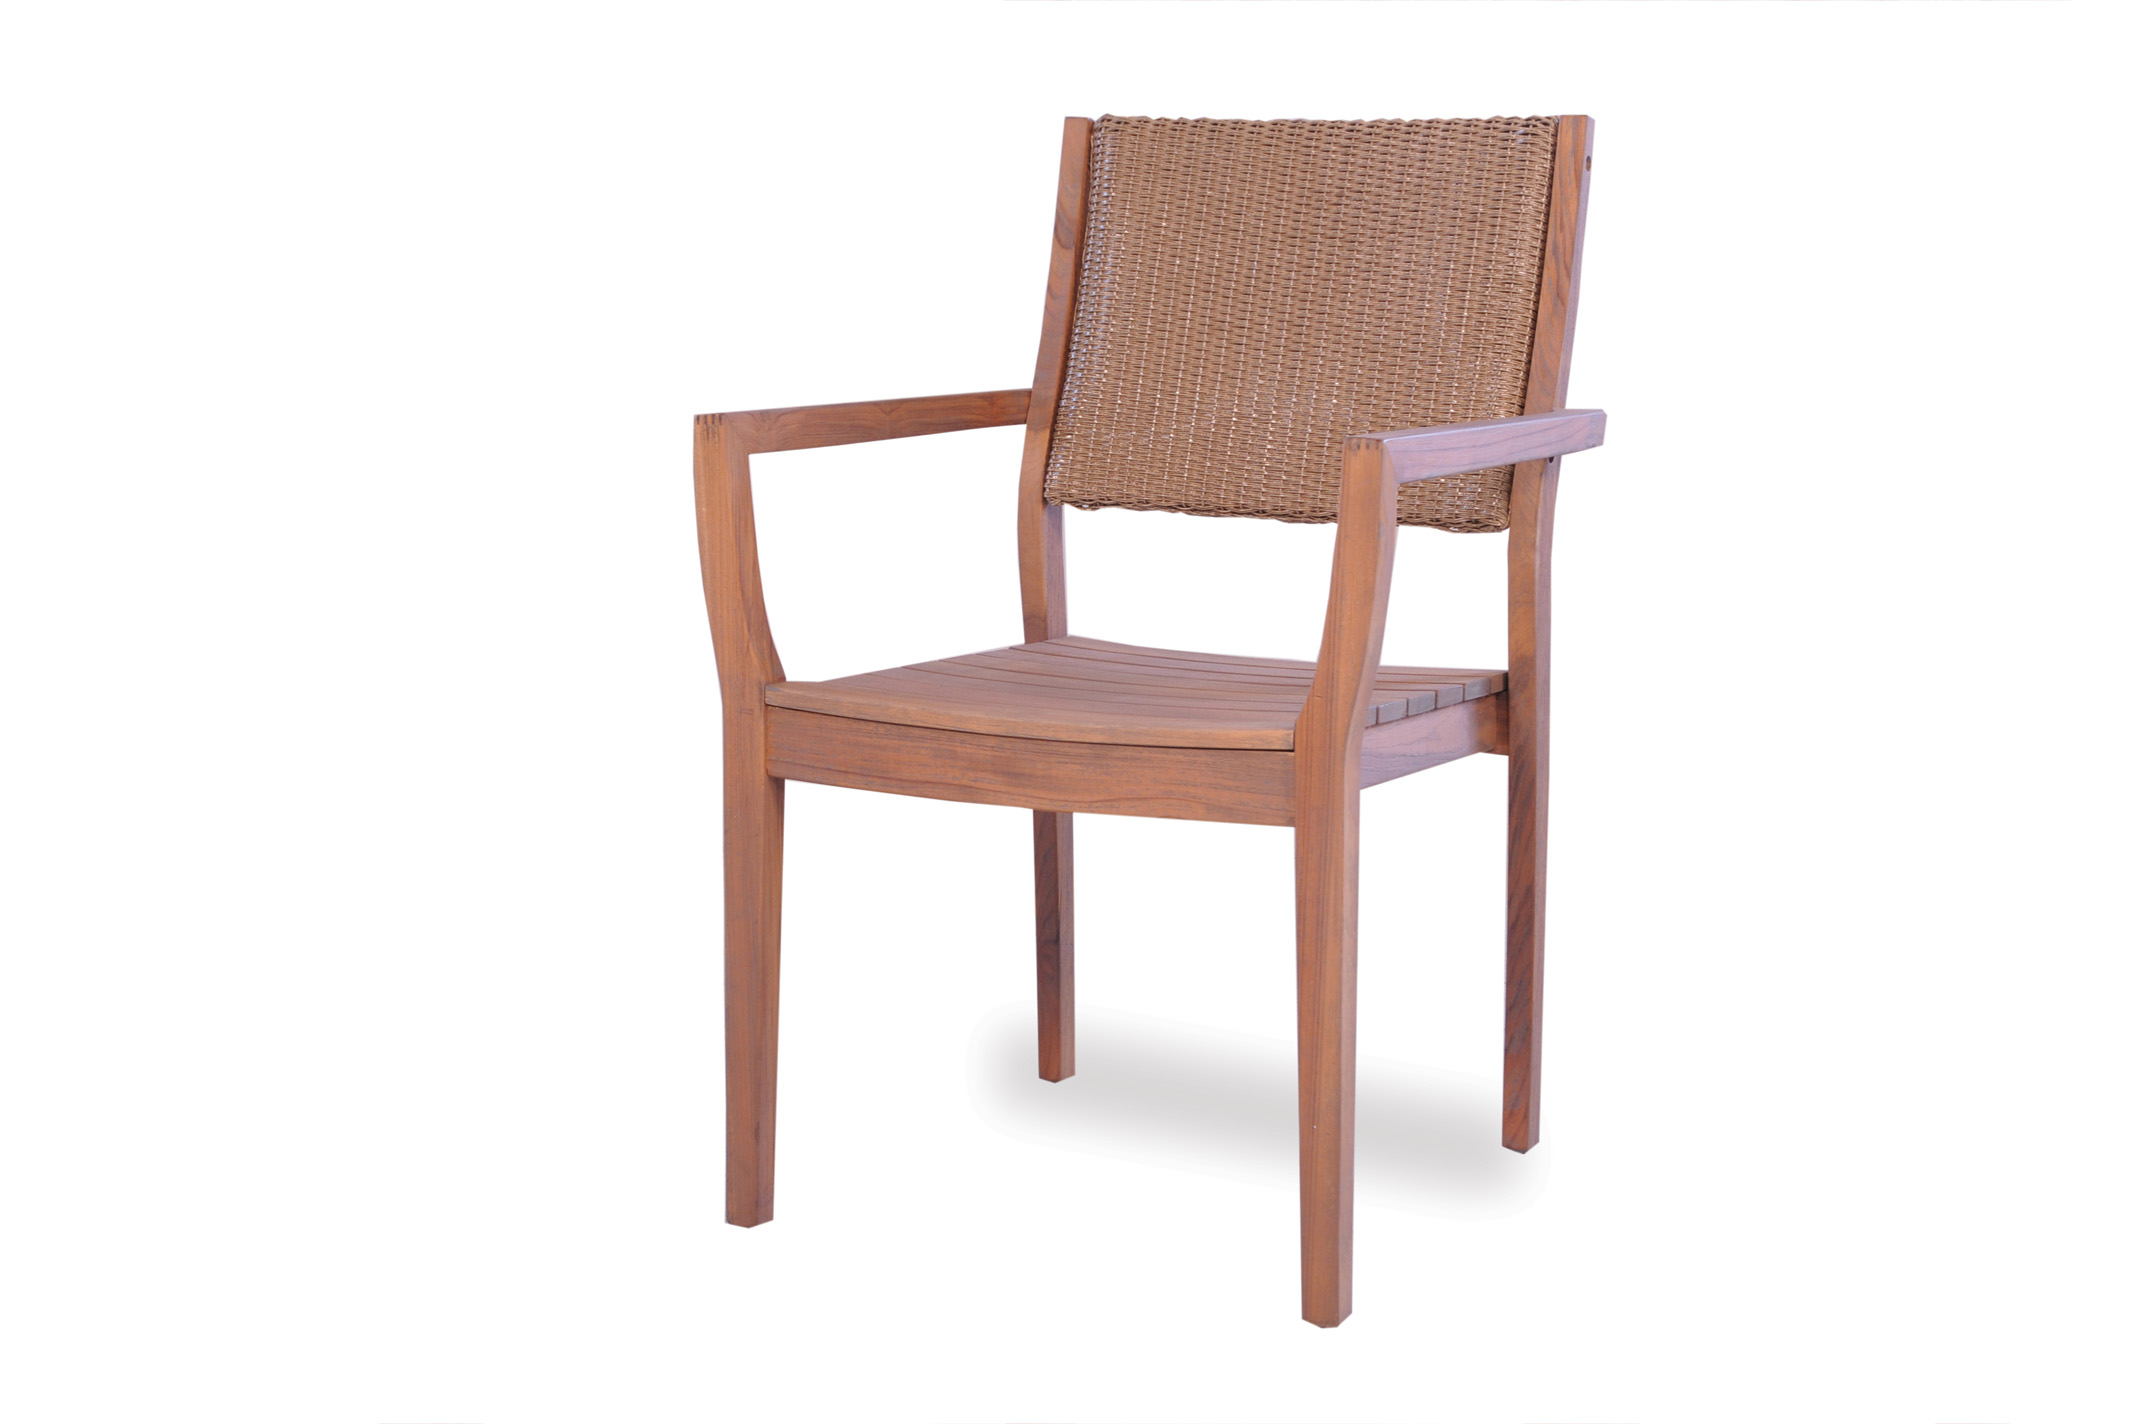 Loom -Back Teak Dining Chair